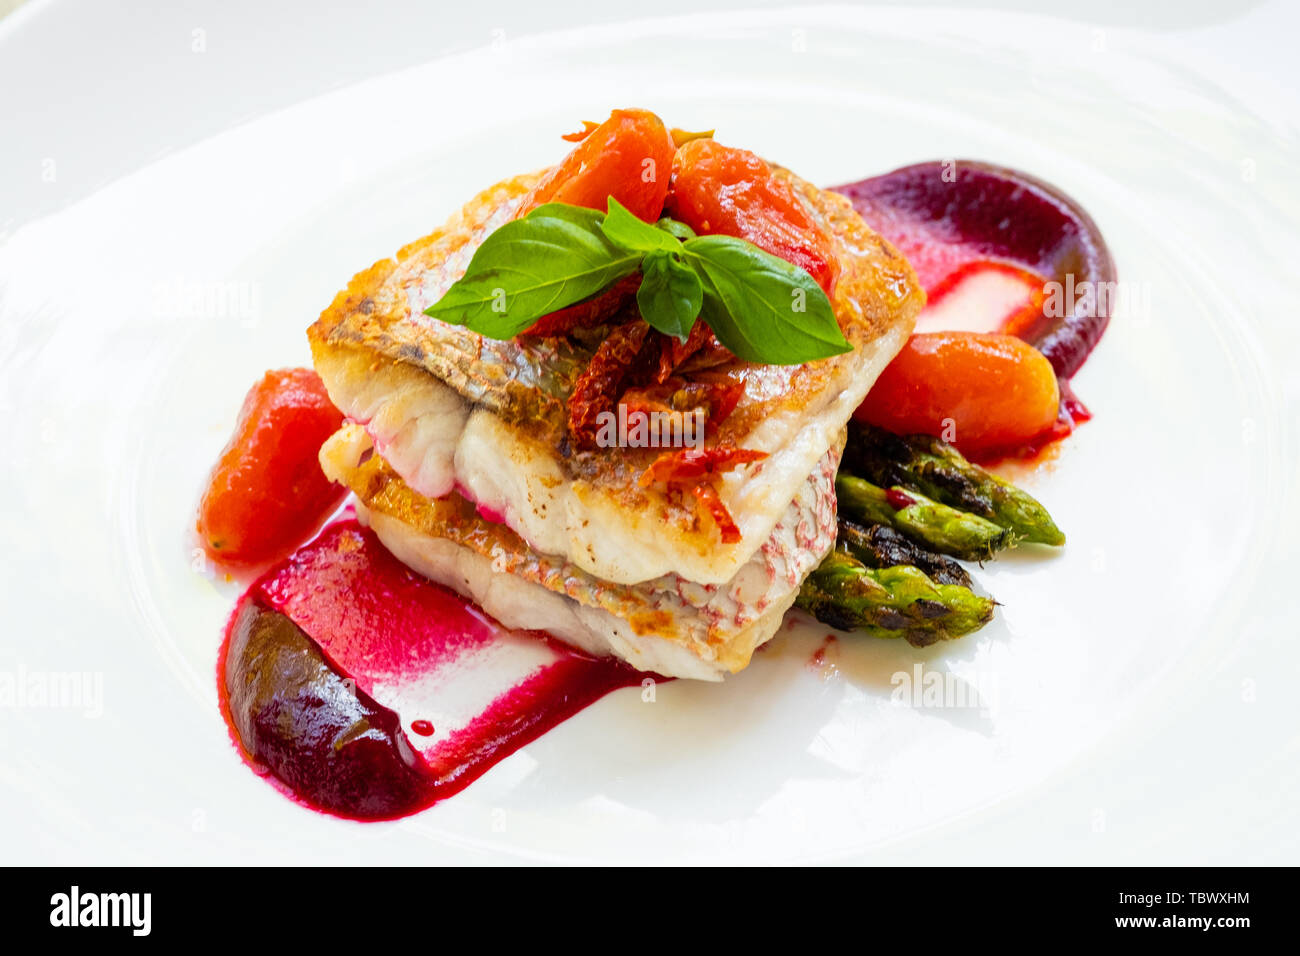 close up of a pan seared grilled red snapper fish fillet with asparagus, beetroot sauce,cherry san marzano tomatoes and basil on a white plate natural Stock Photo